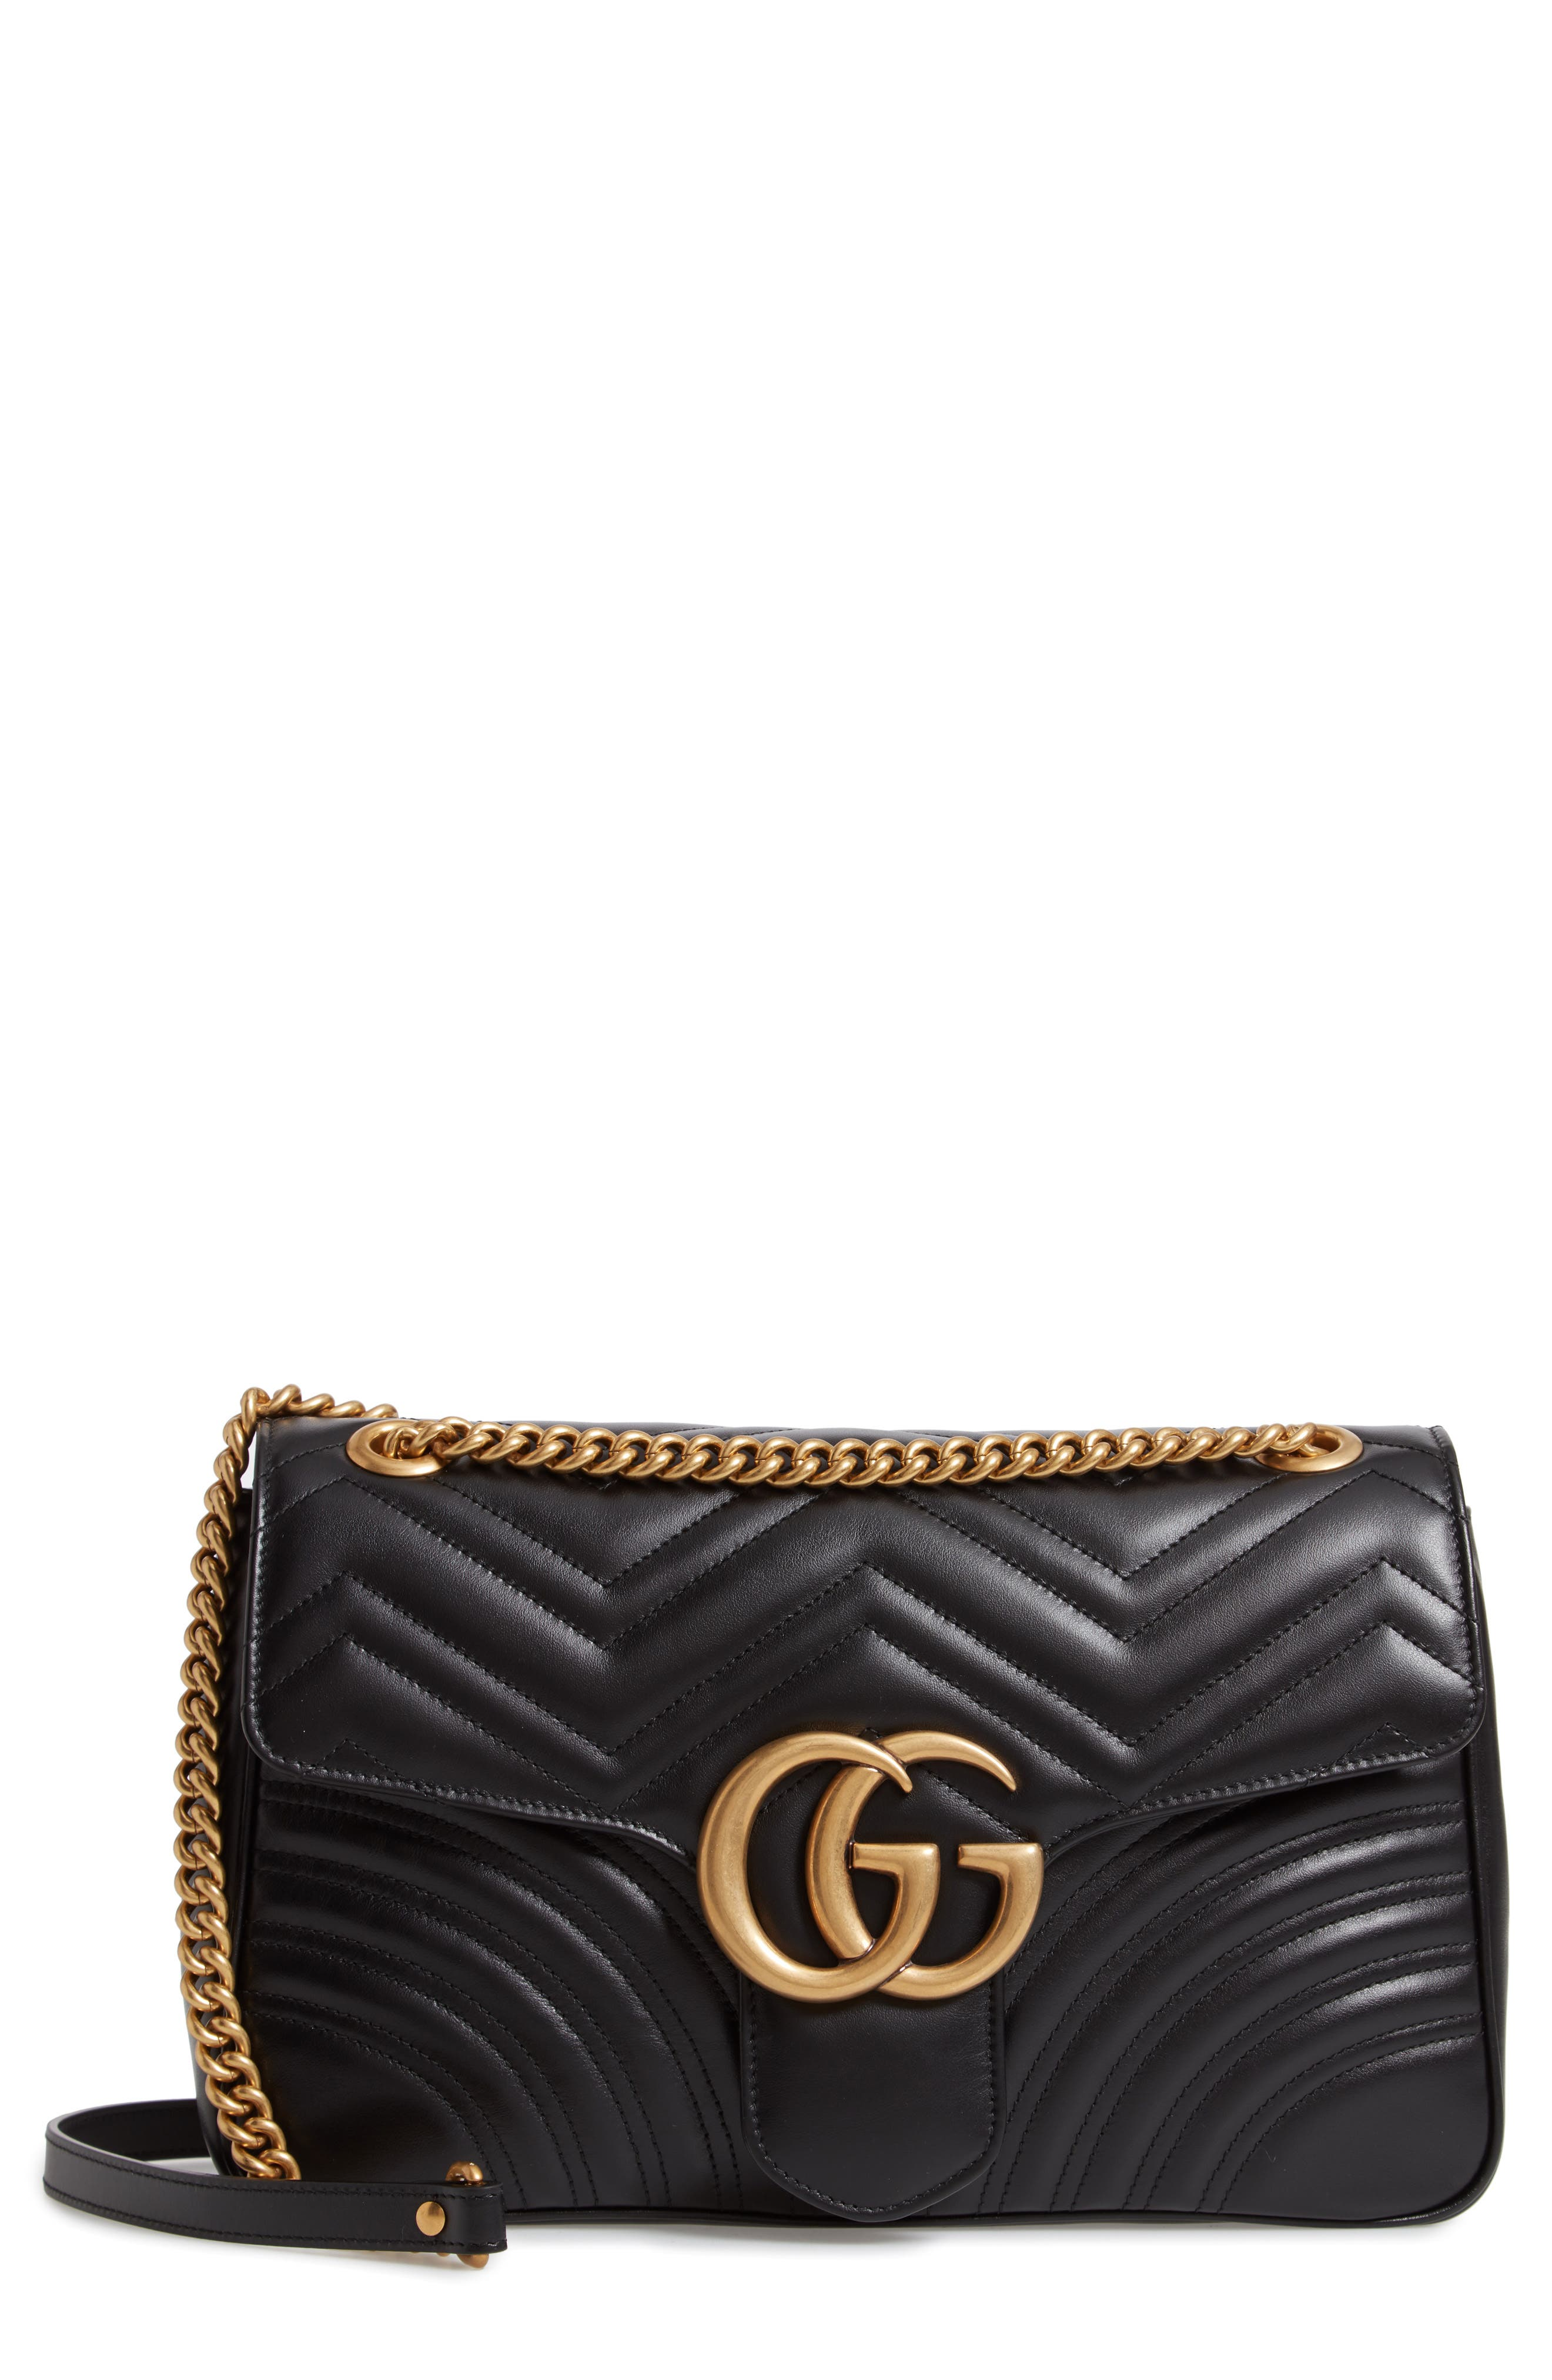 gucci women s handbags purses wallets nordstrom rh shop nordstrom com gucci handbags outlet usa gucci handbags outlet